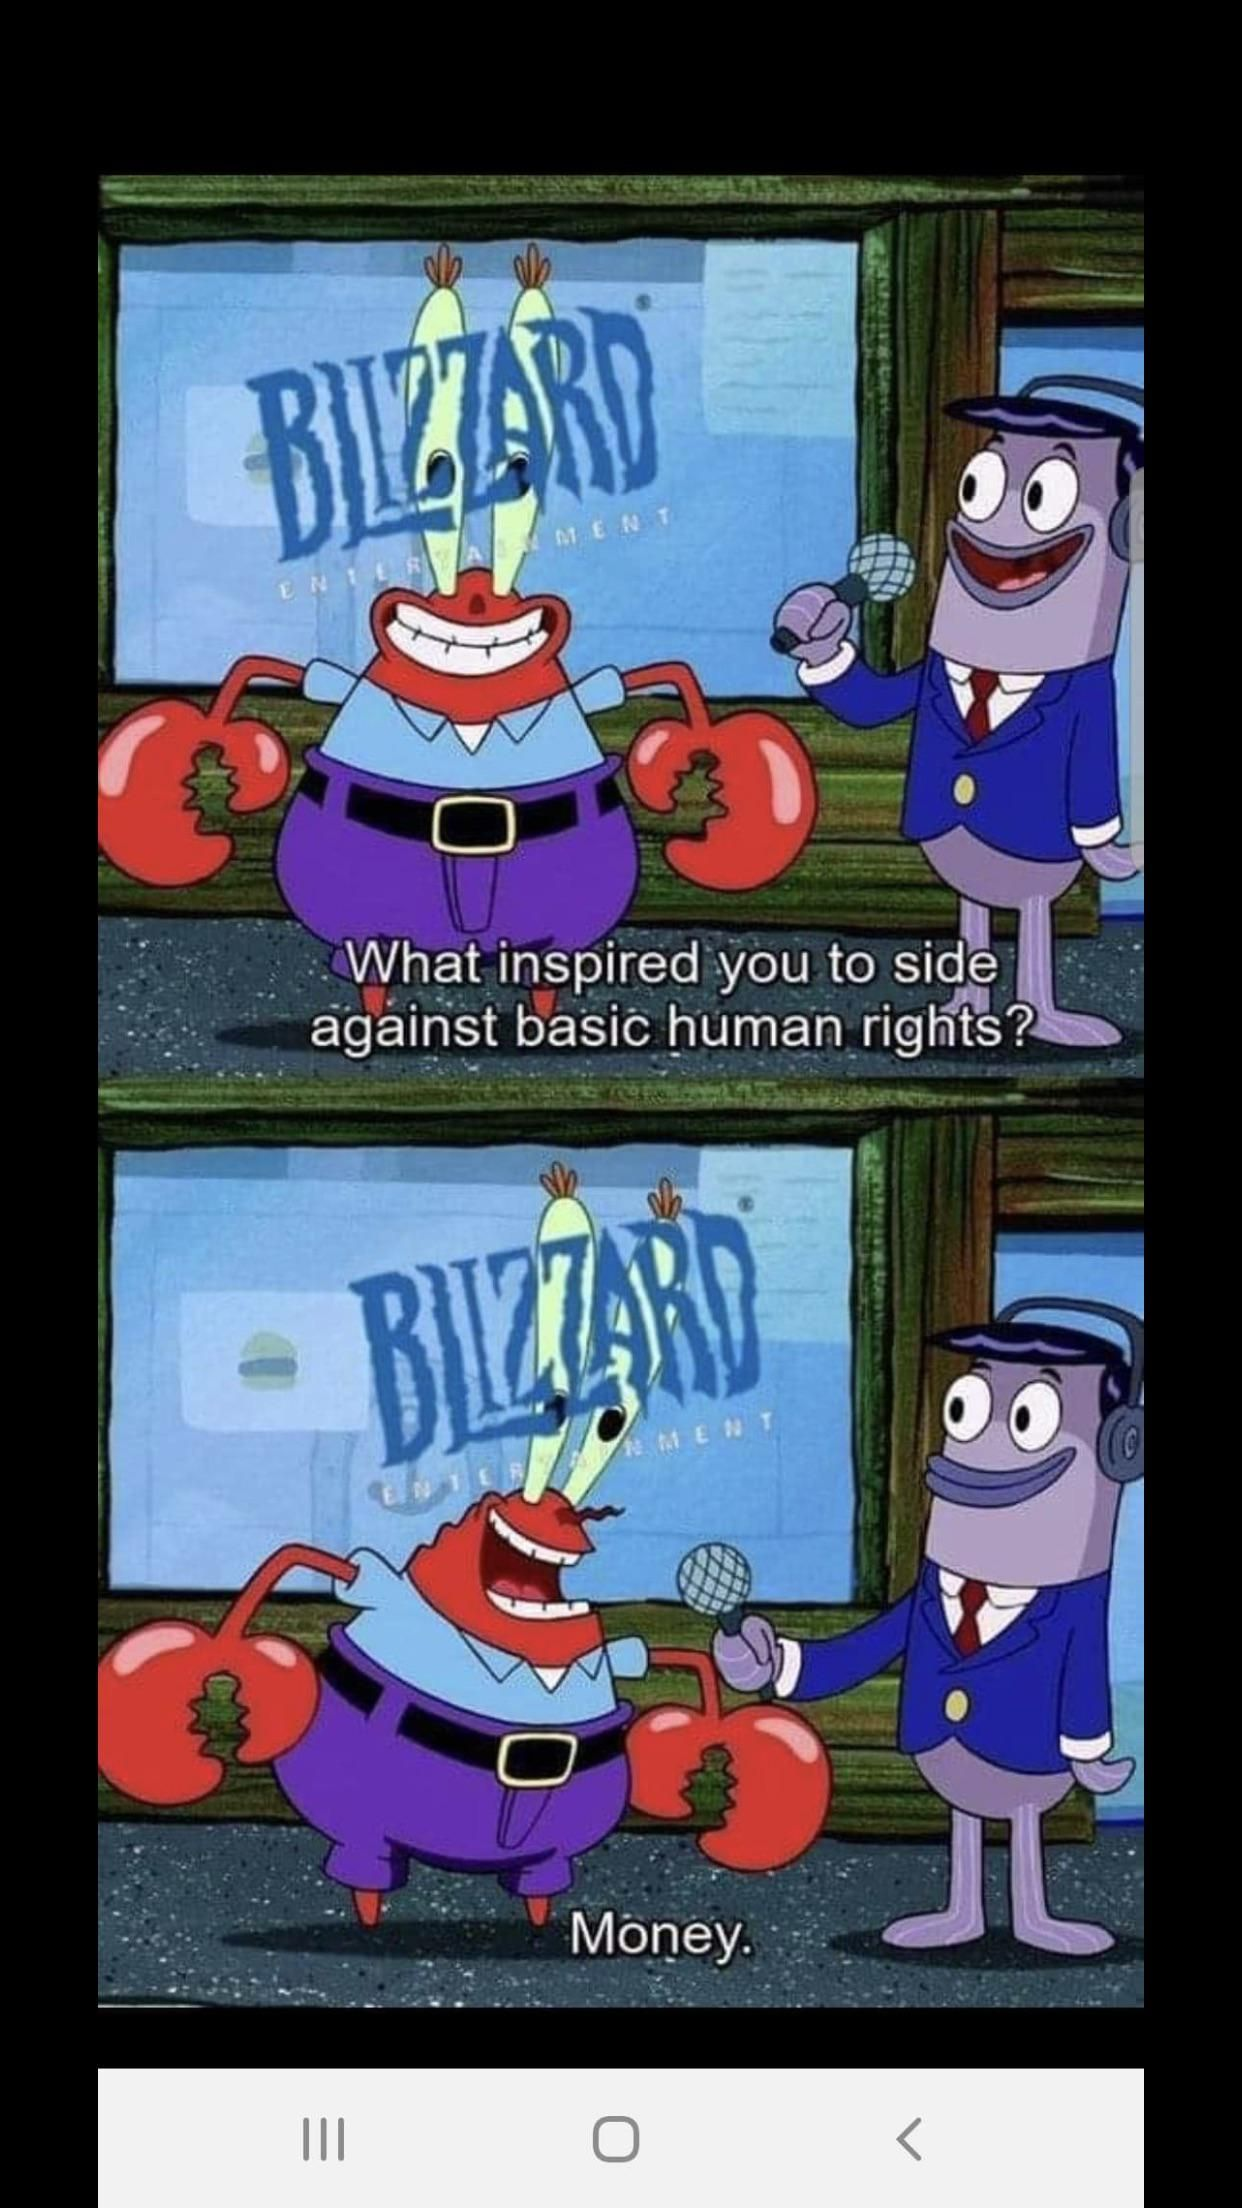 The state of our zeitgeist, as foreshadowed by Mr. Krabs.